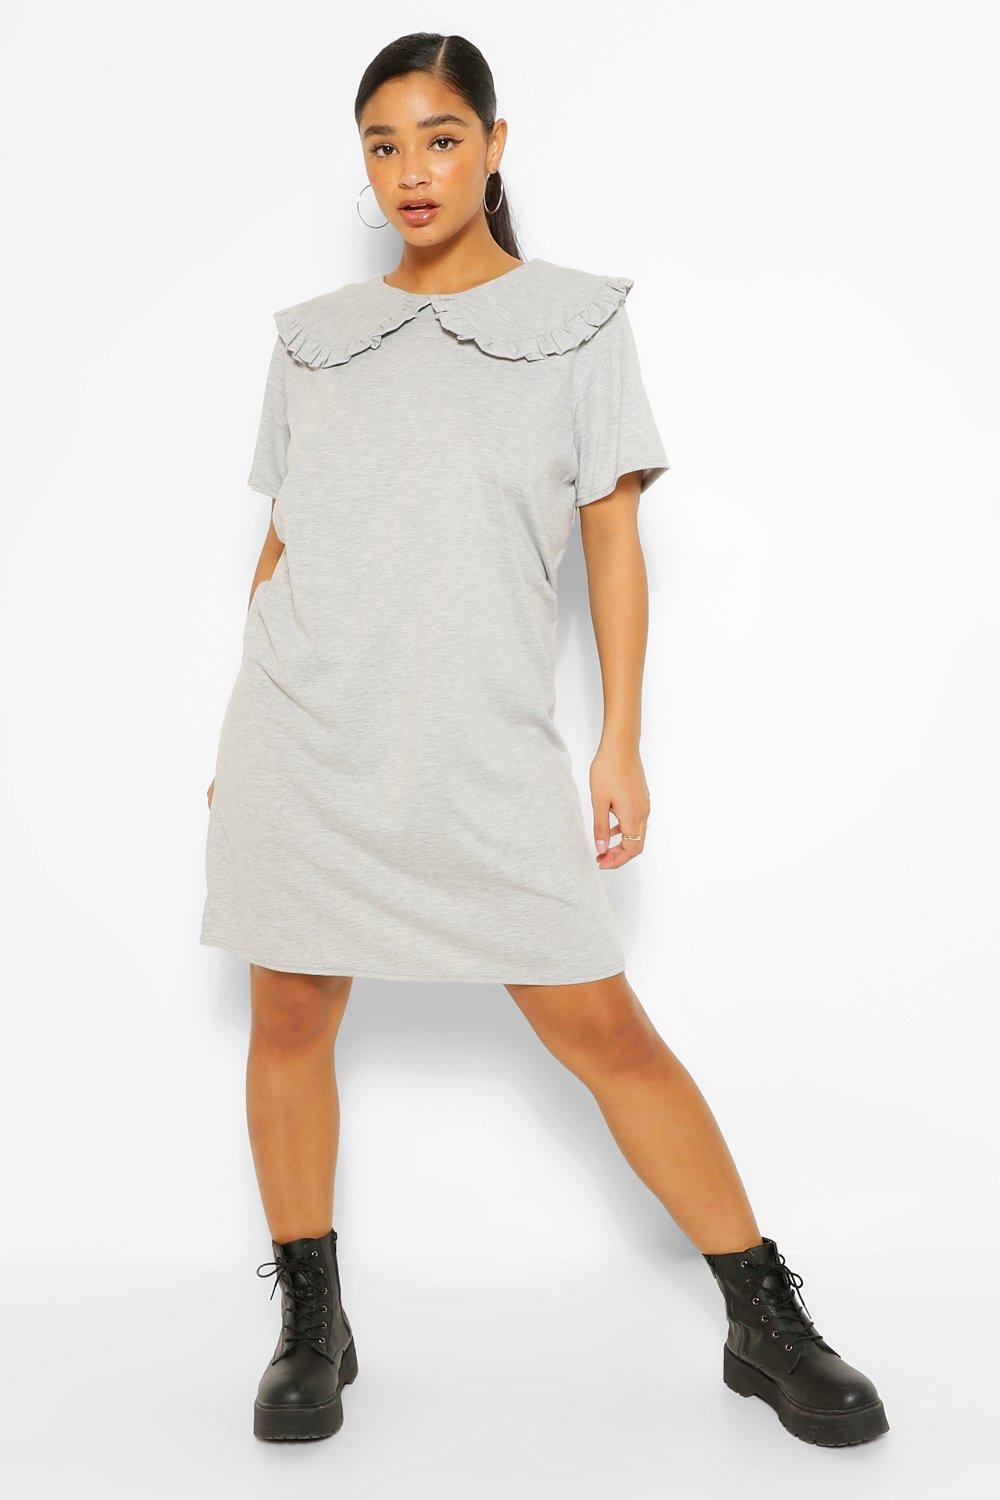 Plus Collar Detail T-Shirt Dress 19